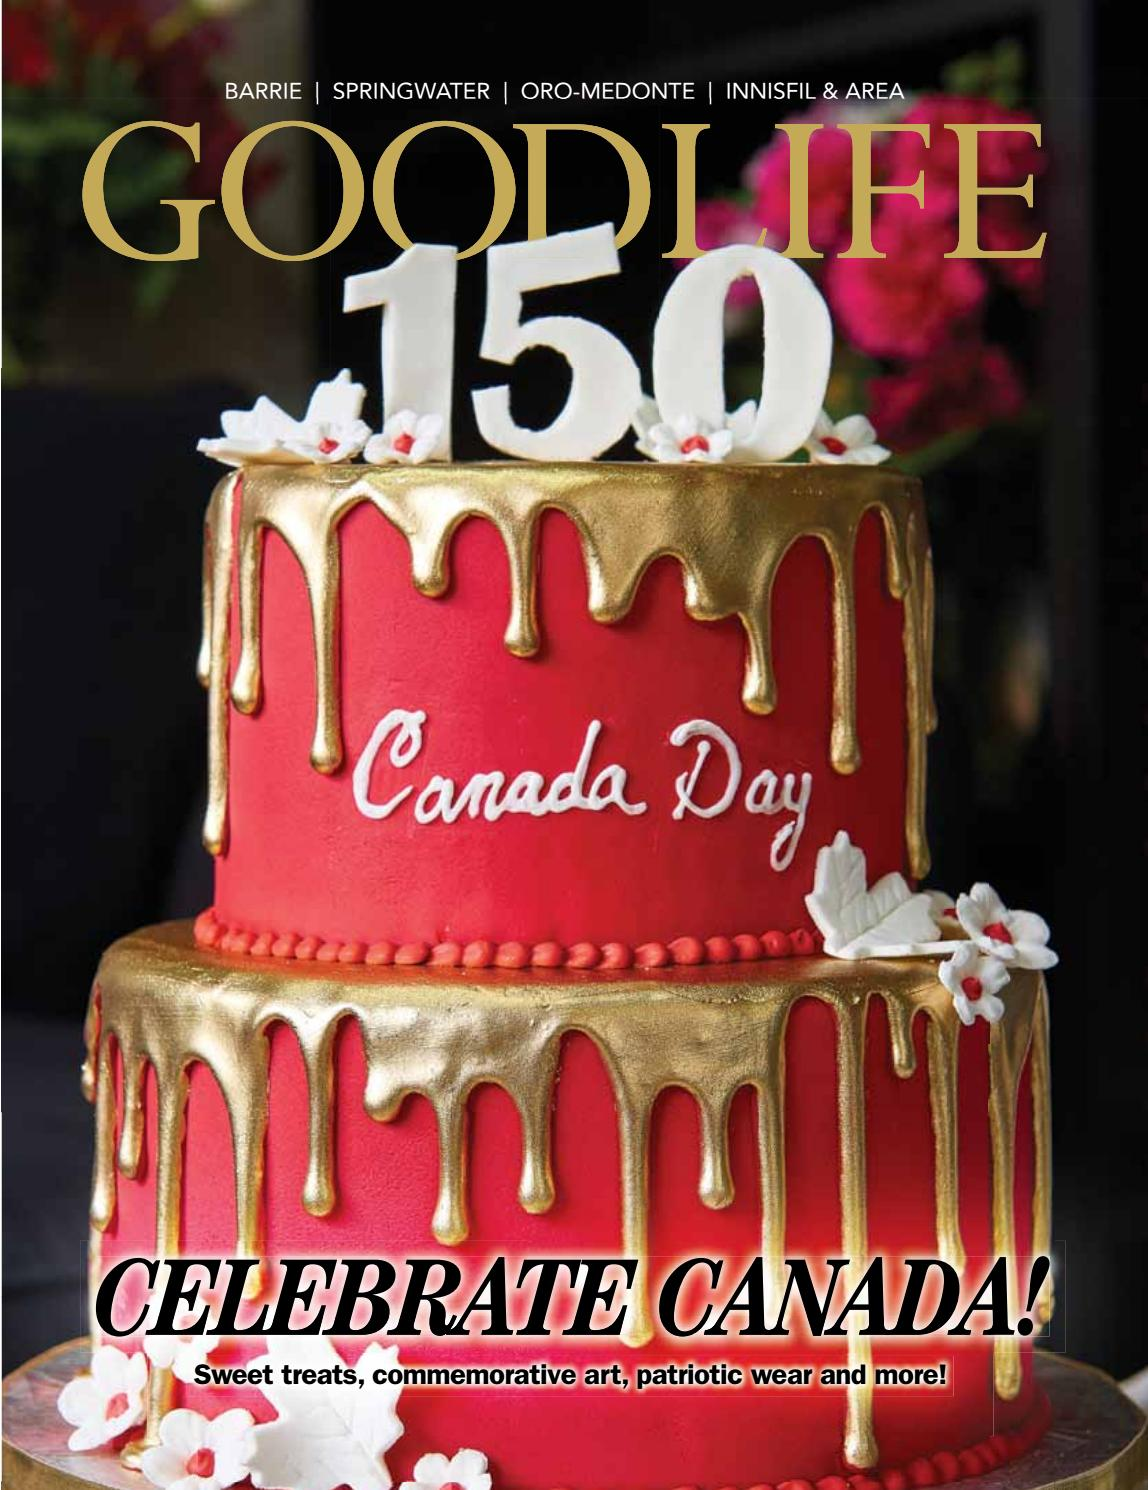 Küchen In U Form Bilder Goodlife Barrie By Goodlife Magazine Simcoe County Issuu